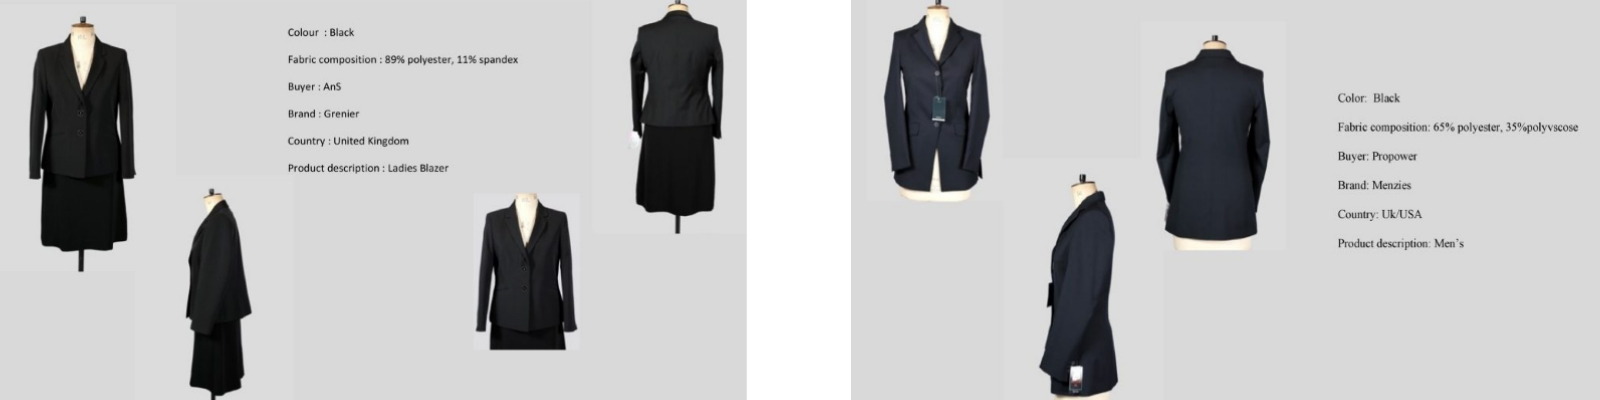 LGFG women's luxury blazers, jackets and coats for wholesale distribution